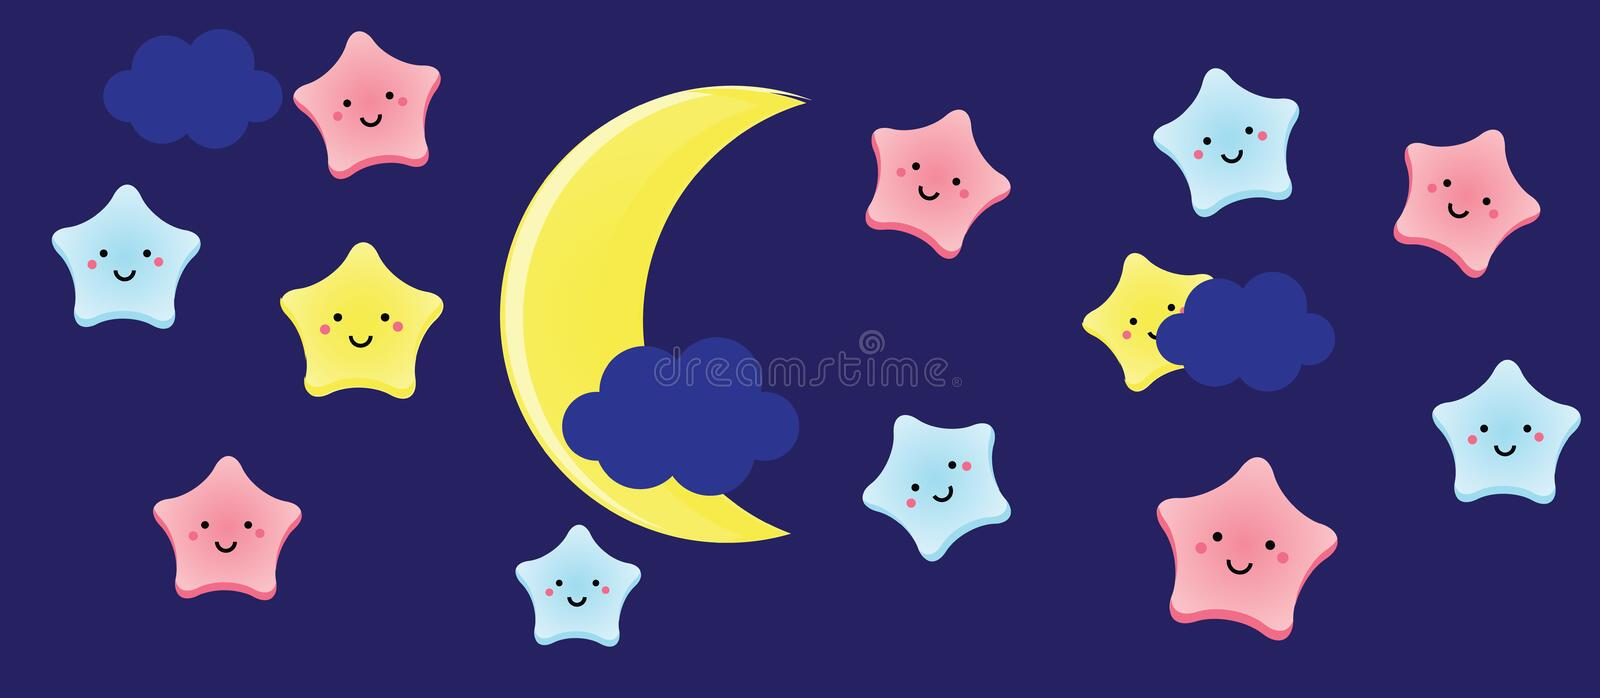 Cute kawaii stars and crescent. Background for kids, babies and children design with night sky characters royalty free illustration